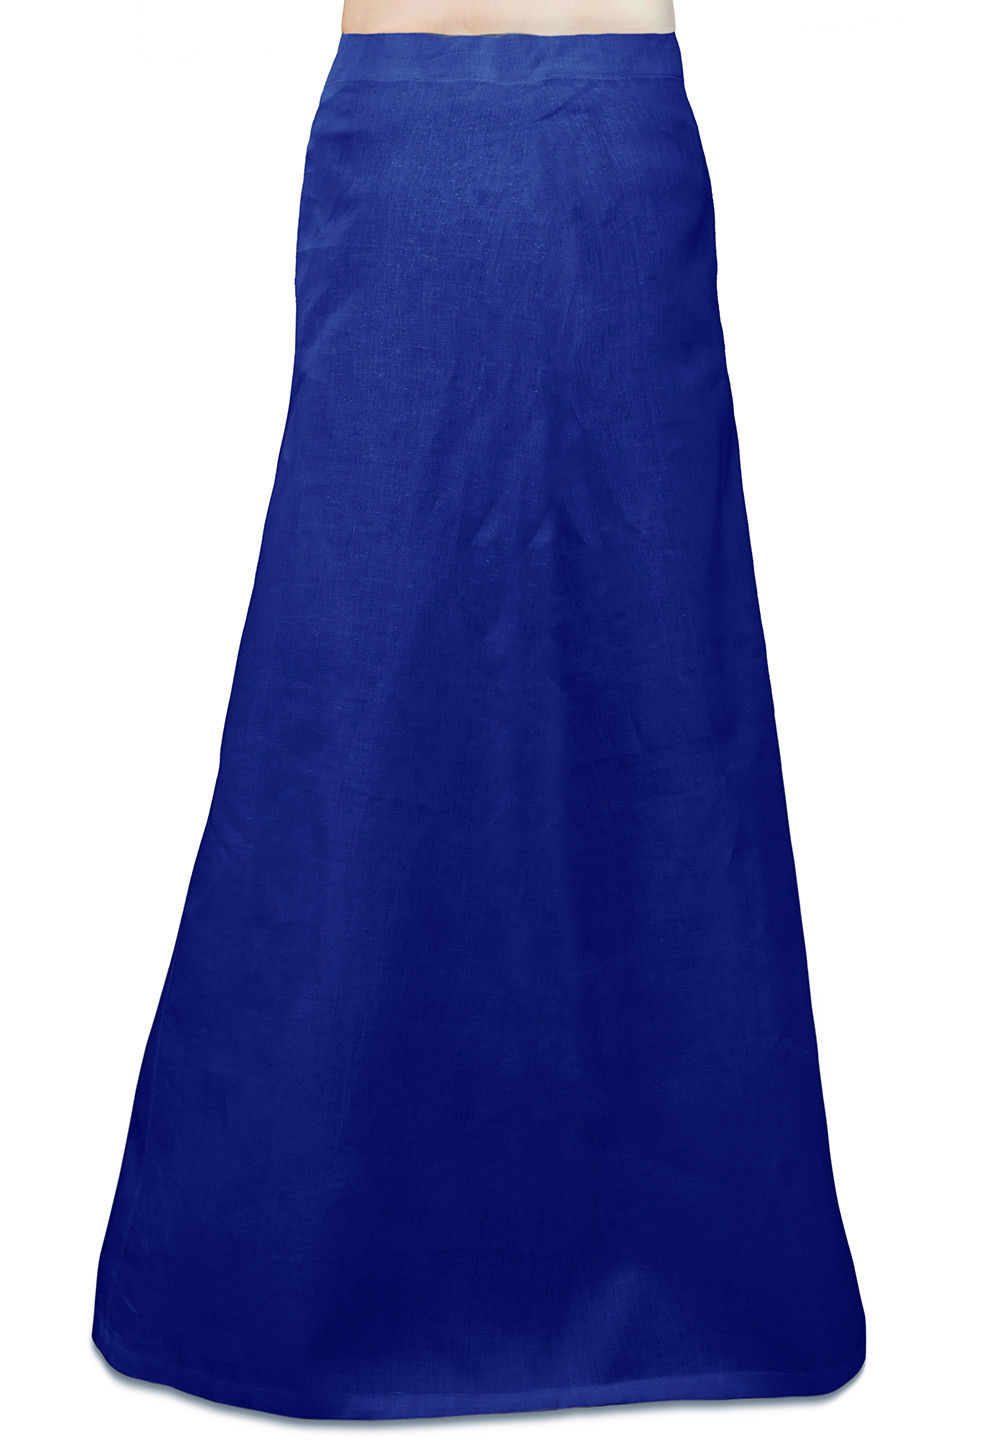 Cotton Petticoat in Royal Blue